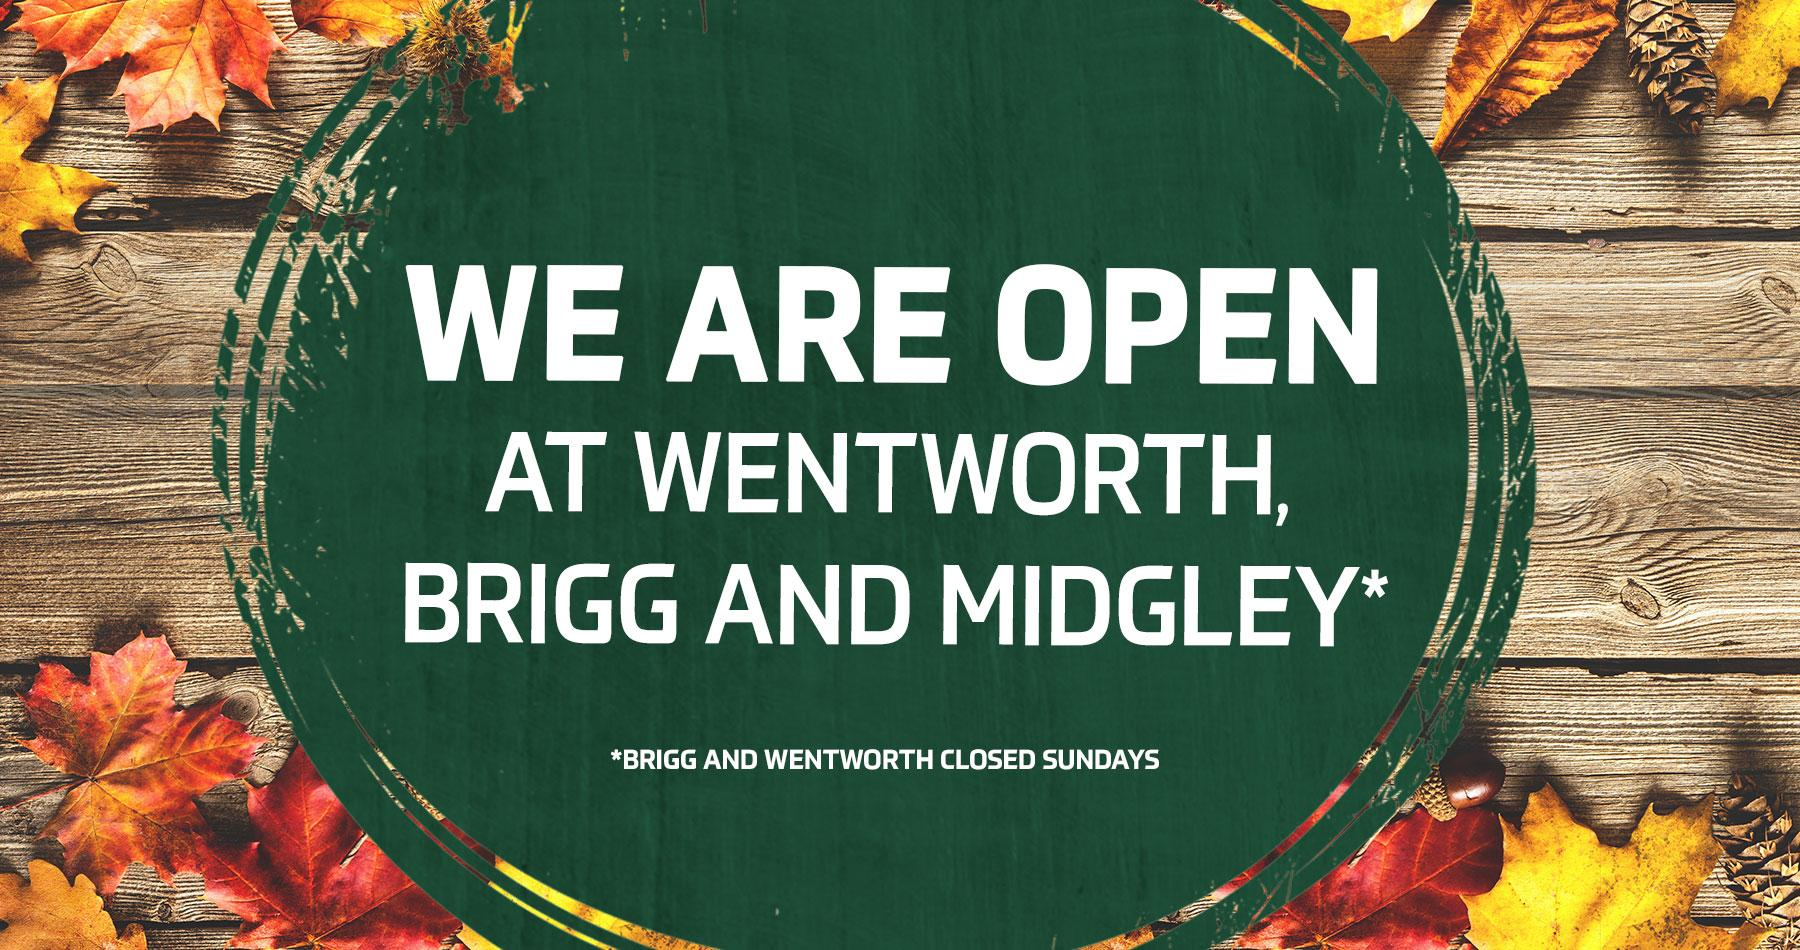 We are open at Wentworth, Brigg and Midgley - Earnshaws